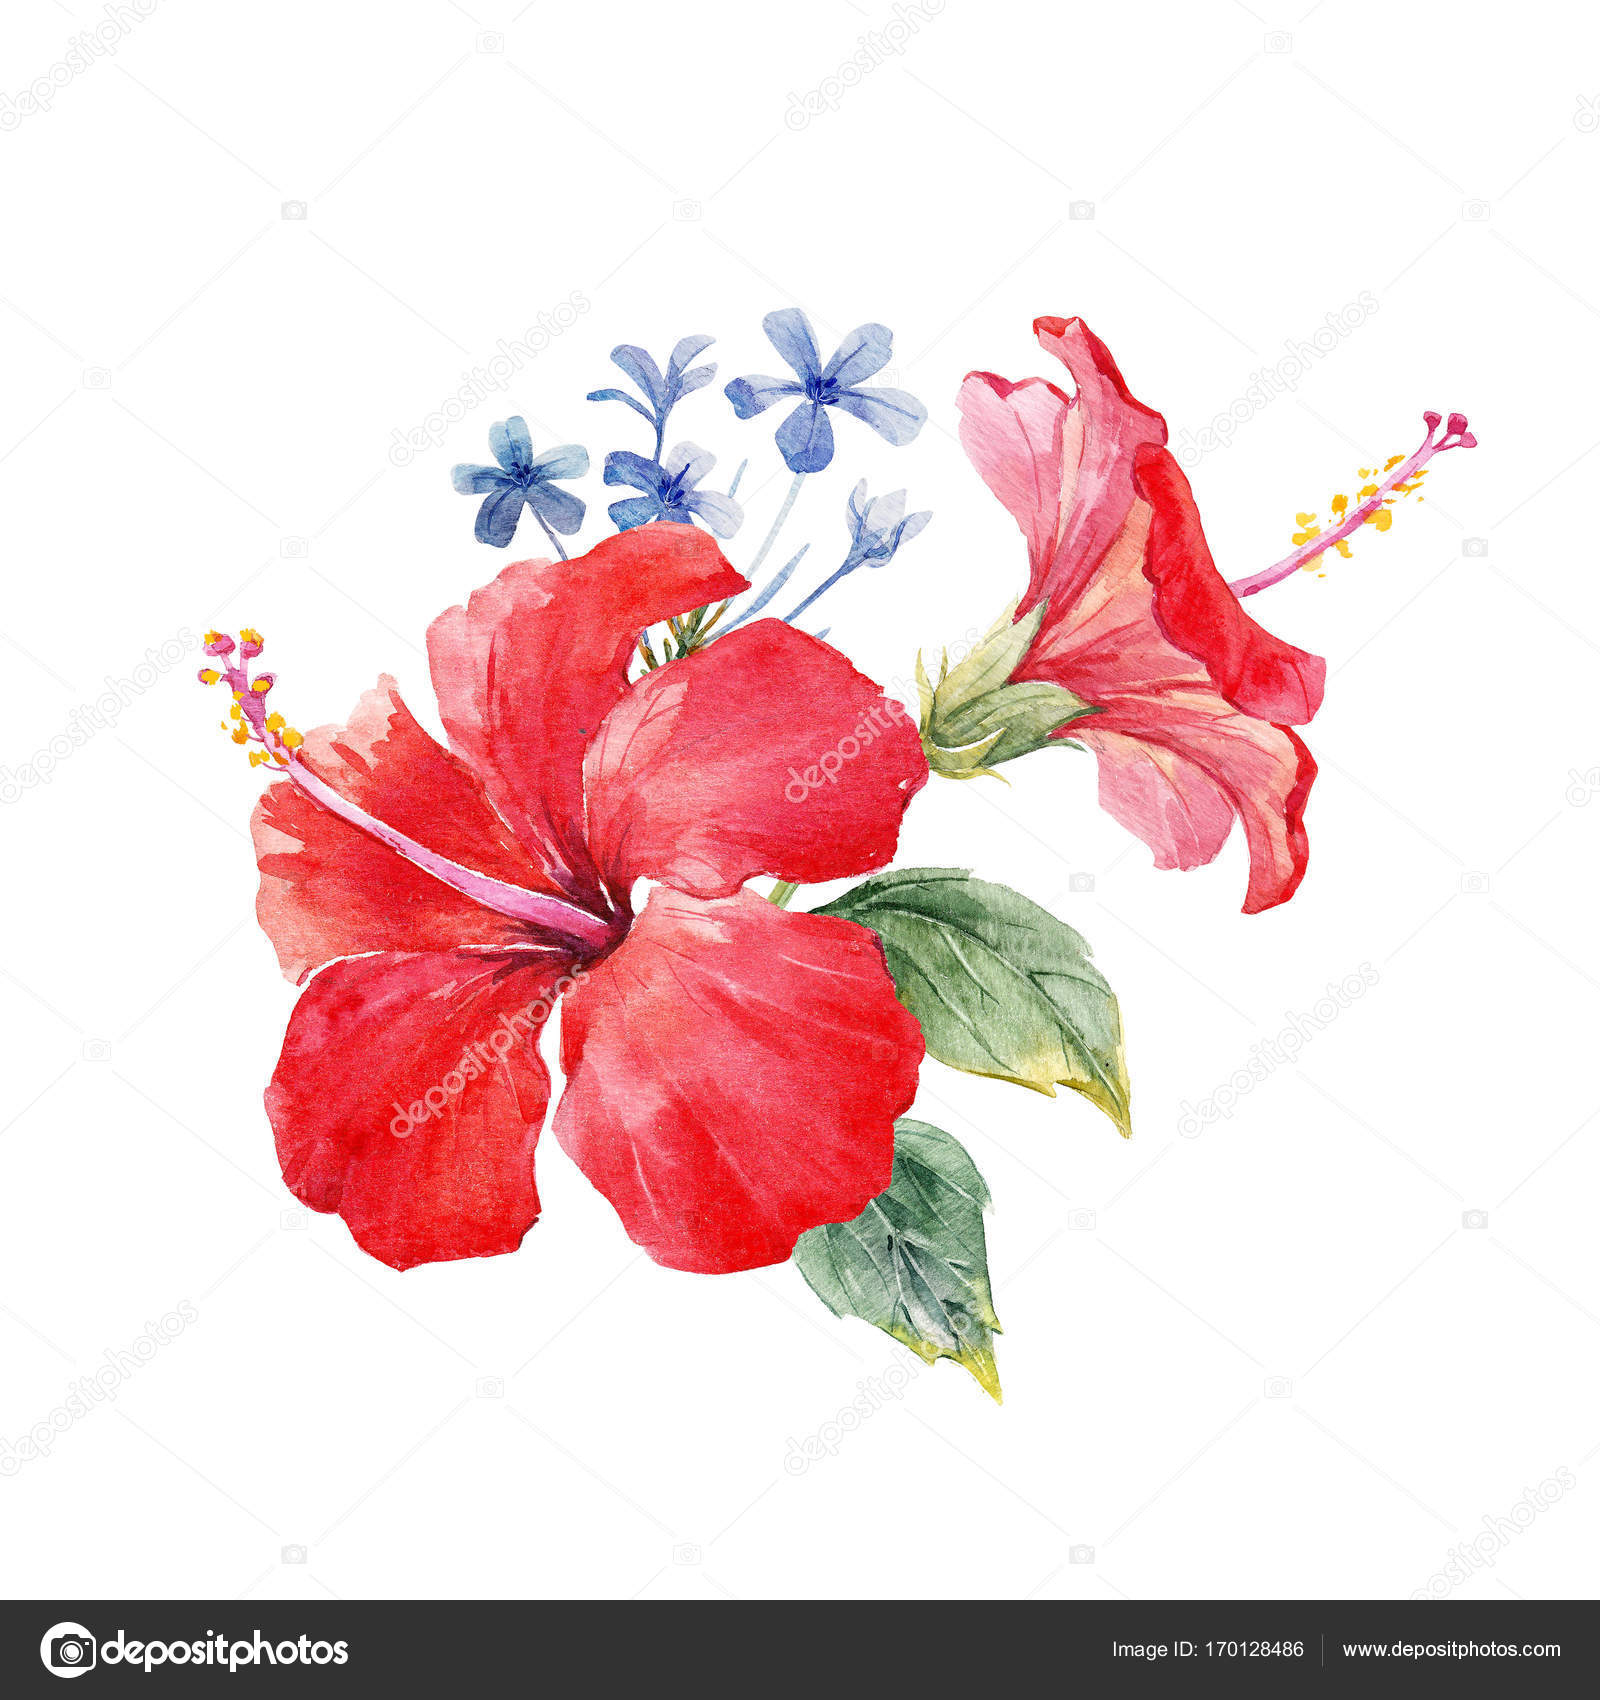 Watercolor hibiscus composition stock photo zeninaasya 170128486 beautiful tropical composition with watercolor hibiscus flowers photo by zeninaasya izmirmasajfo